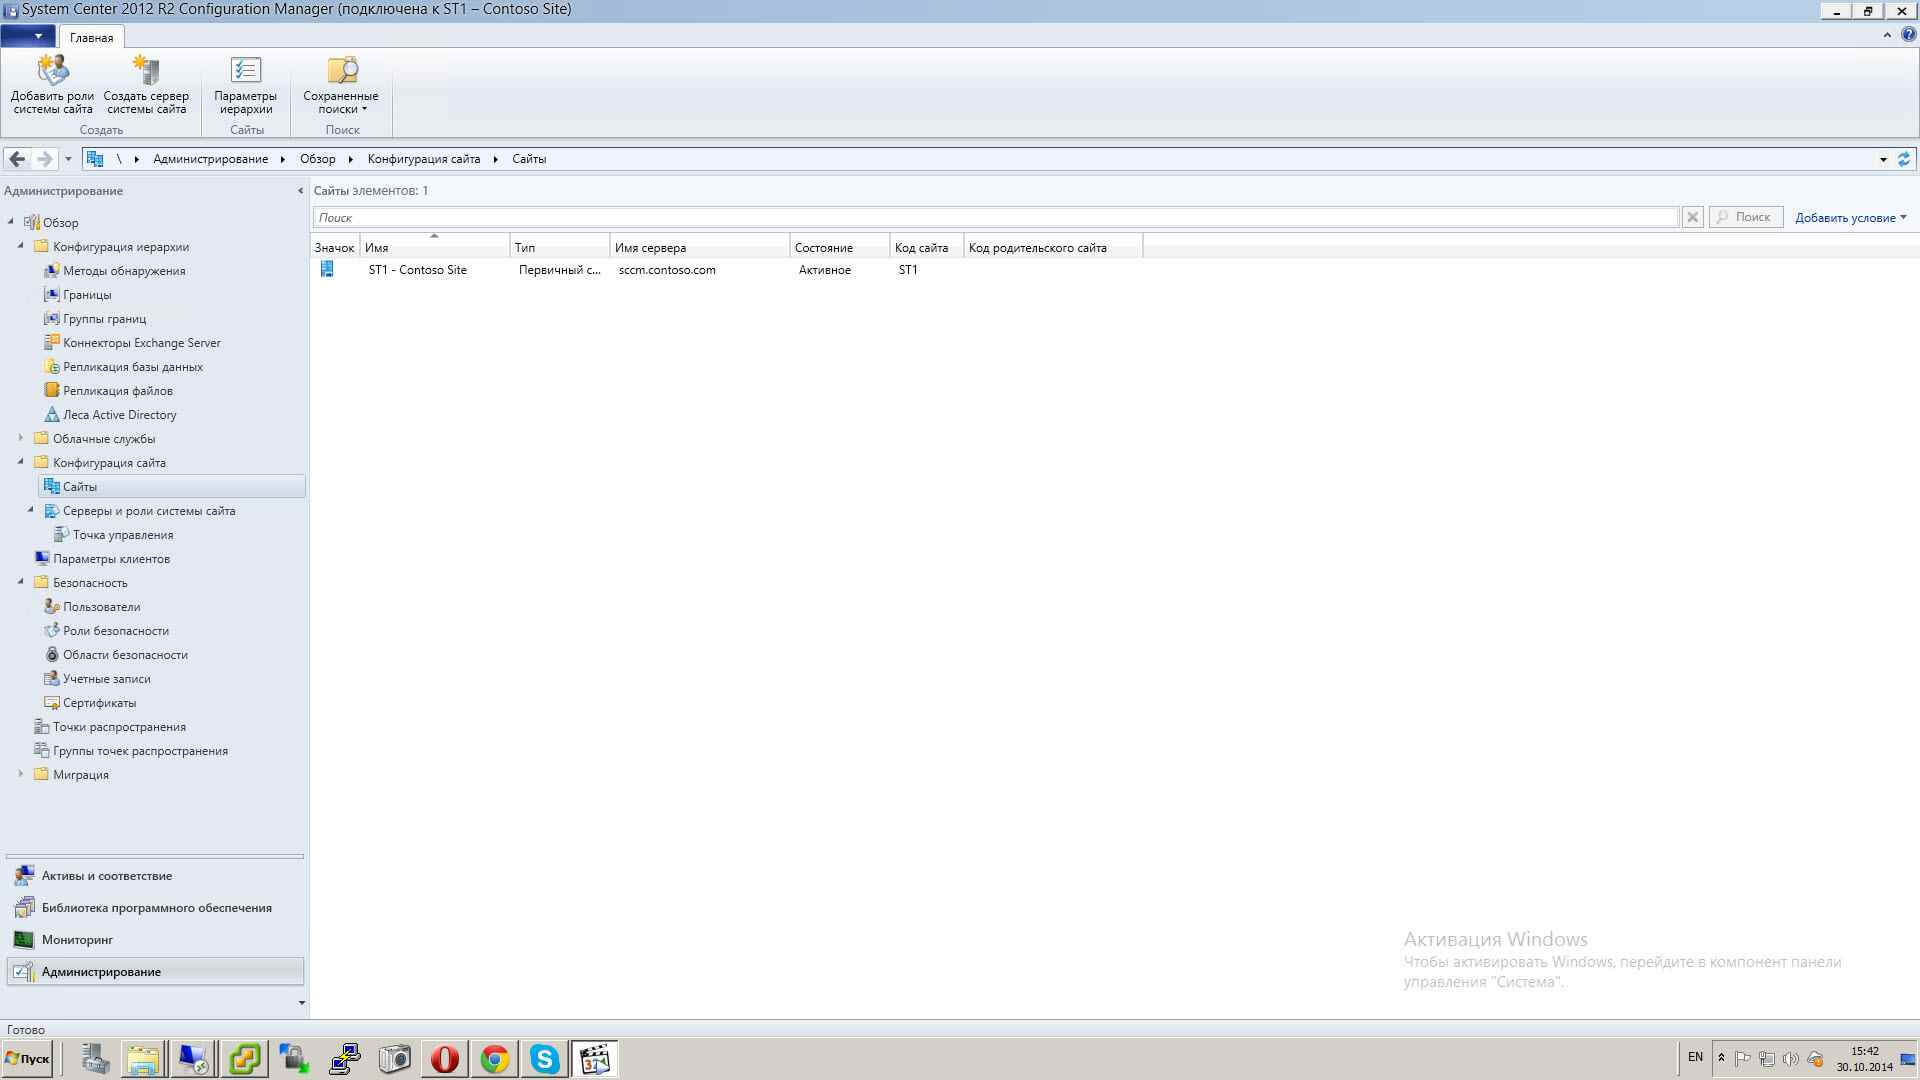 Как установить SCCM (System Center Configuration Manager) 2012R2 в windows server 2012R2 -3 часть. Базовая настройка site server-44